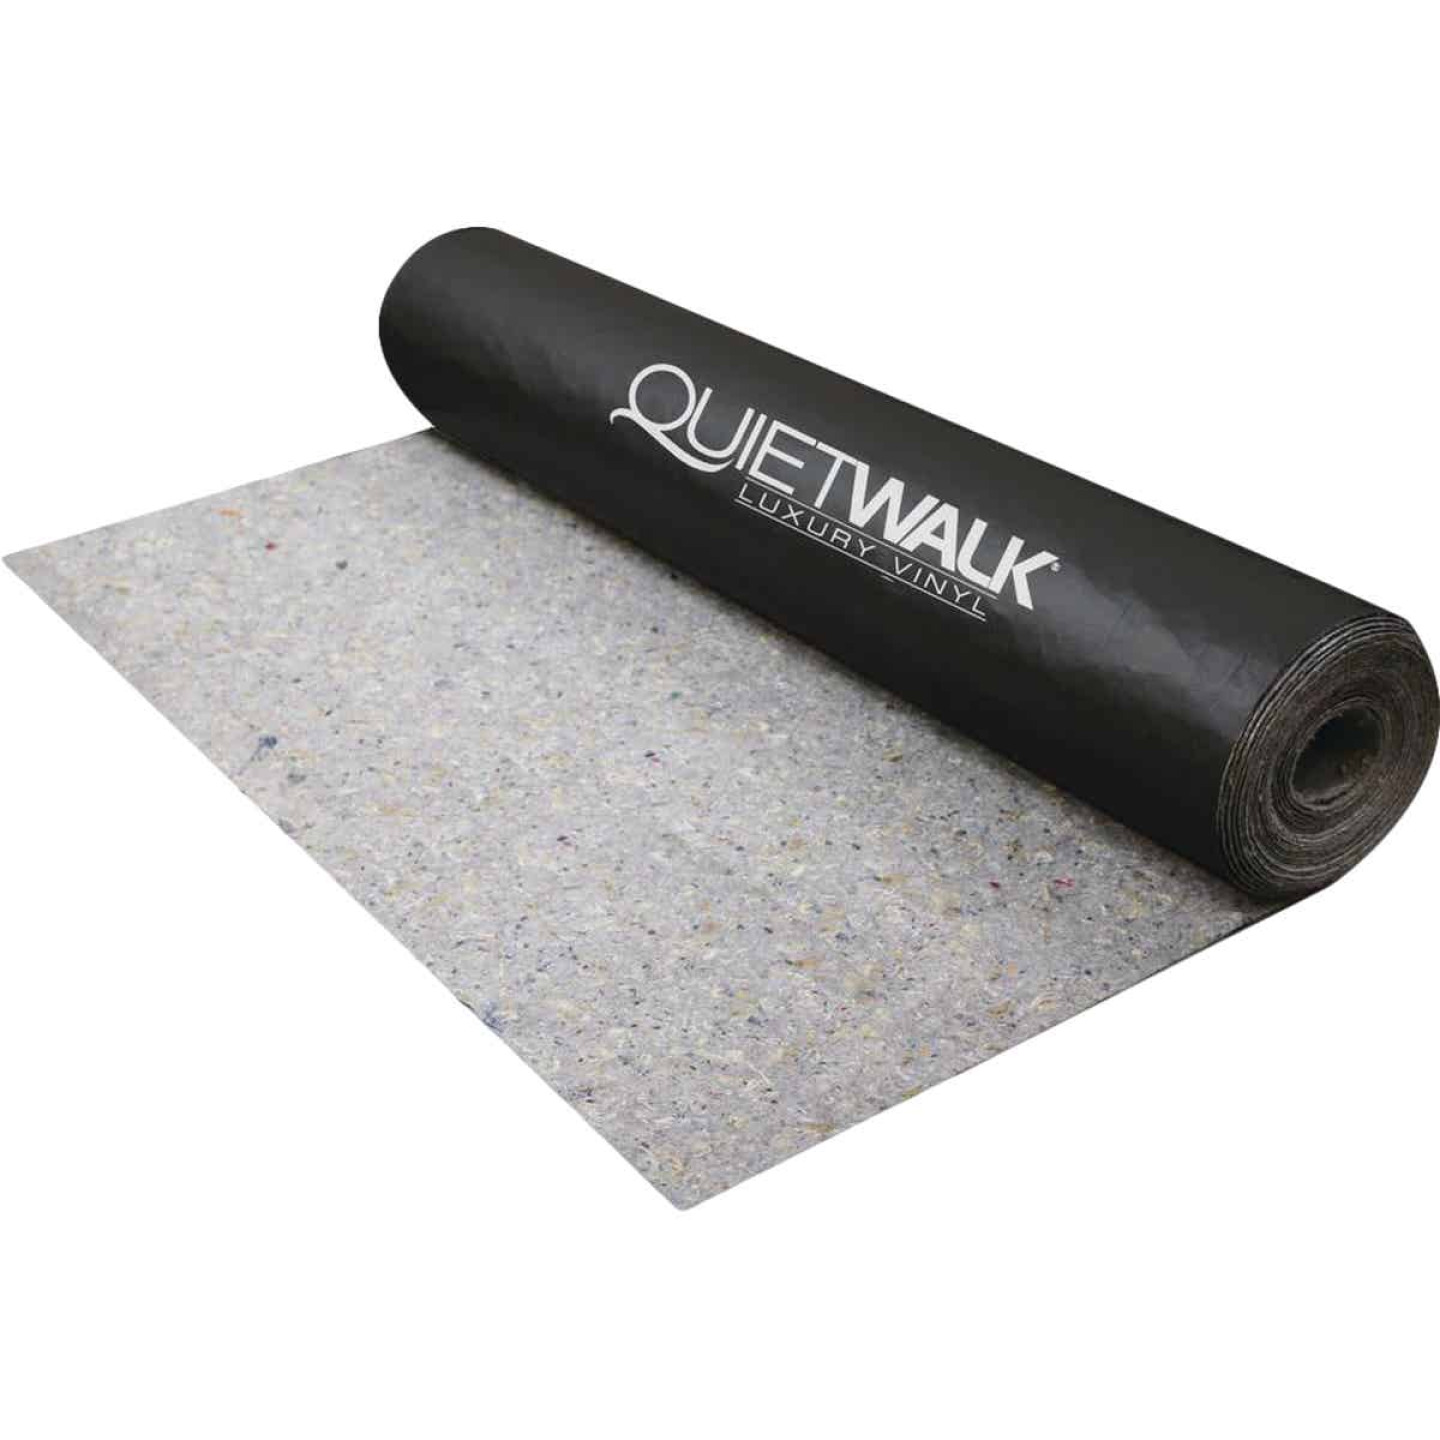 QuietWalk Luxury Vinyl 3 Ft. W x 33.33 In. L Underlayment with Vapor Barrier, 100 Sq. Ft./Roll Image 1